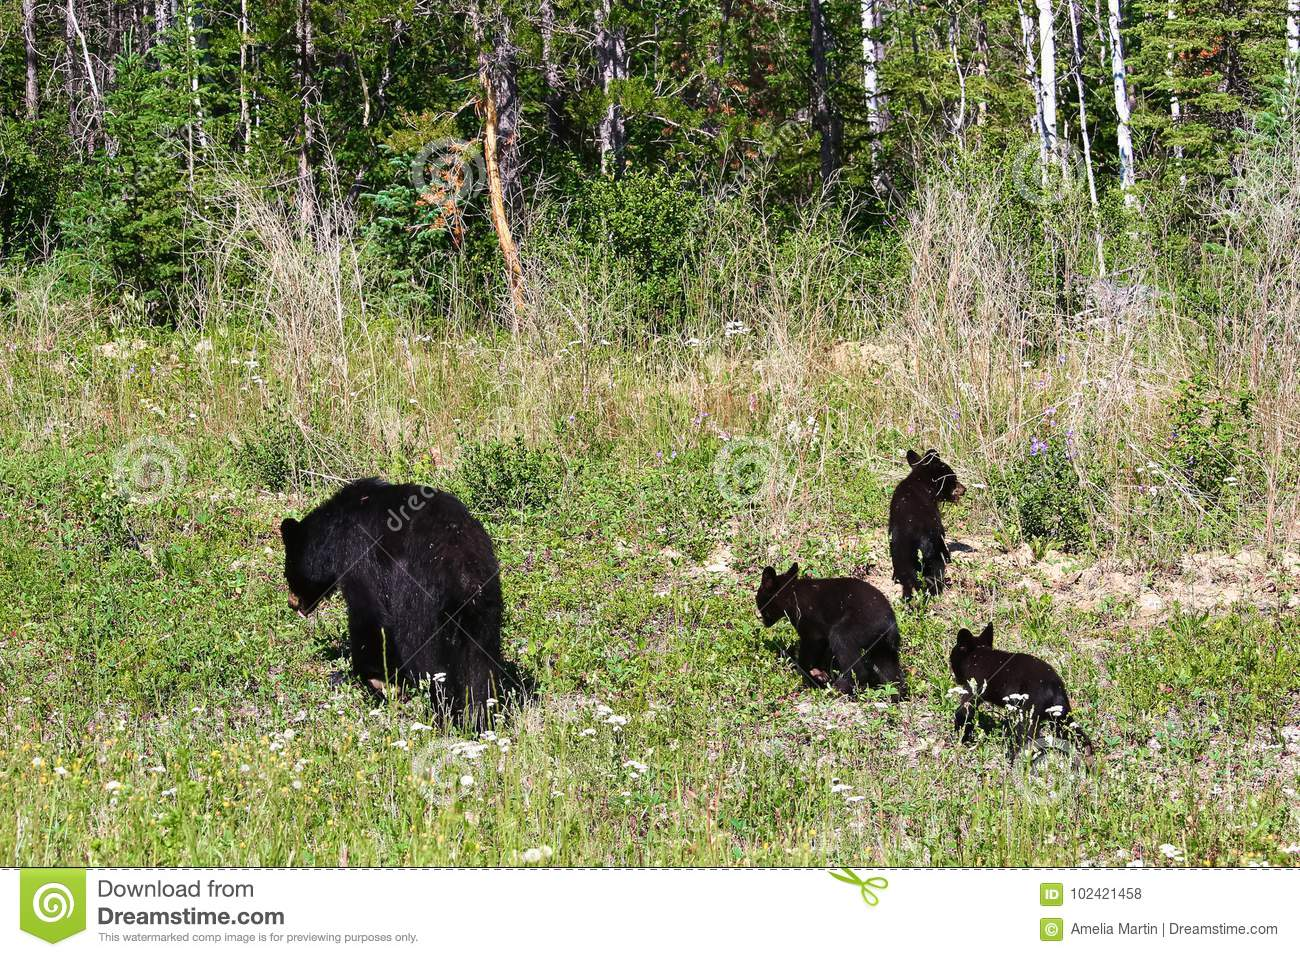 A mother bear and three cubs forage on the edge of a forest